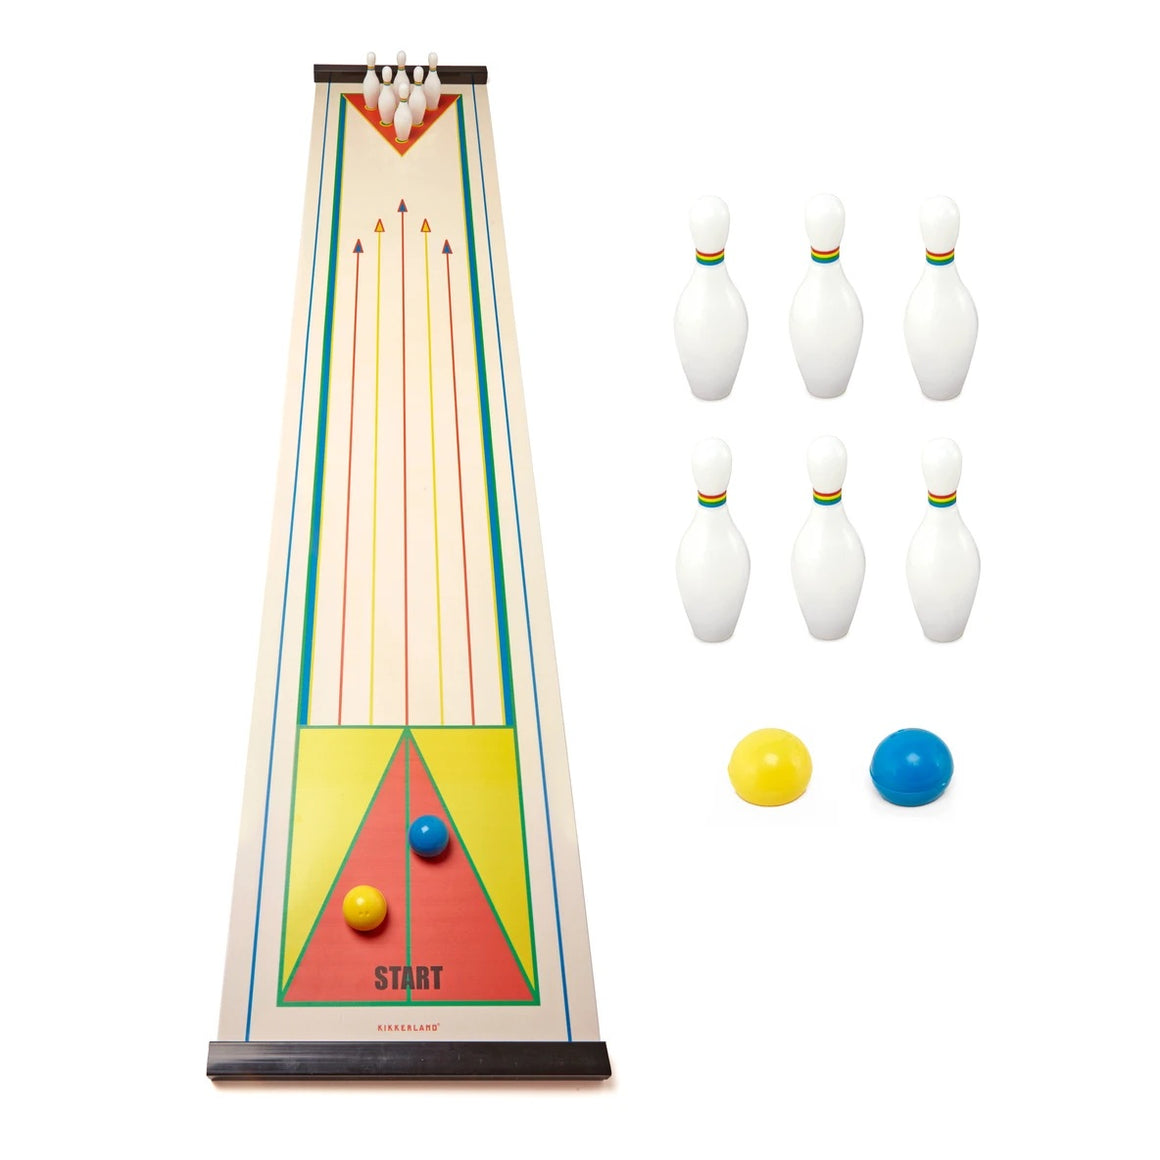 GAMES - TABLETOP BOWLING